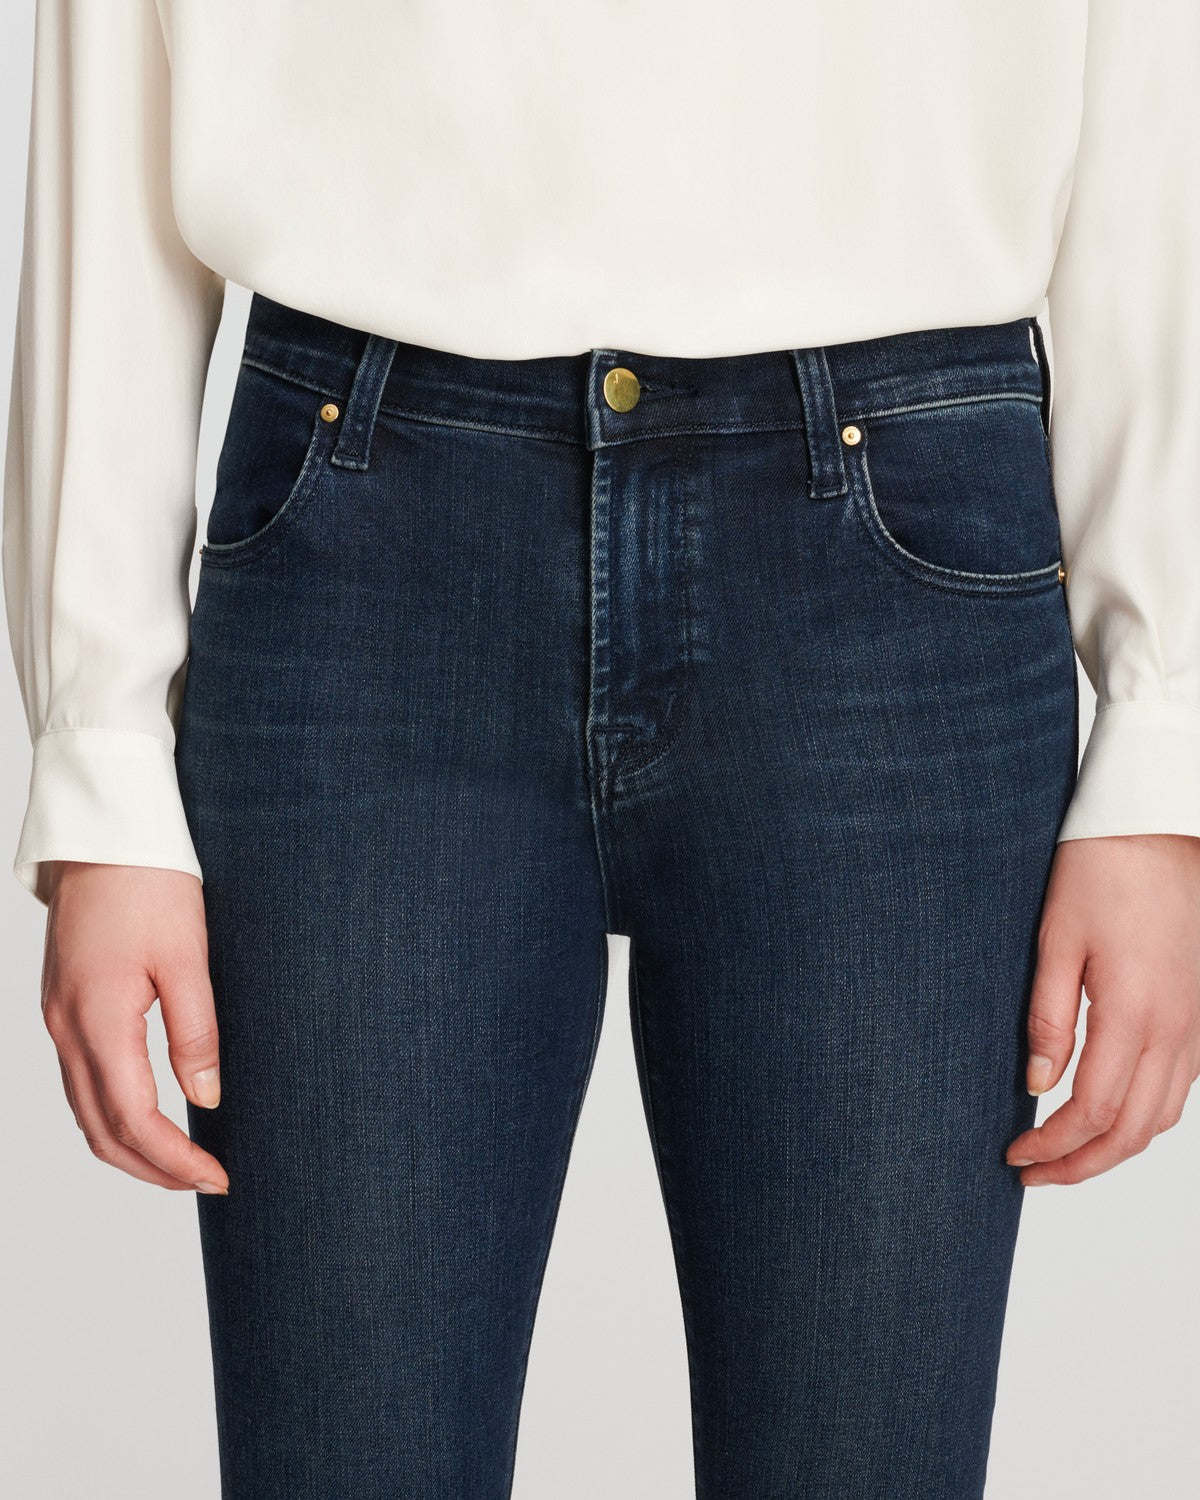 Alana High Rise Skinny Ankle Jean in Fix